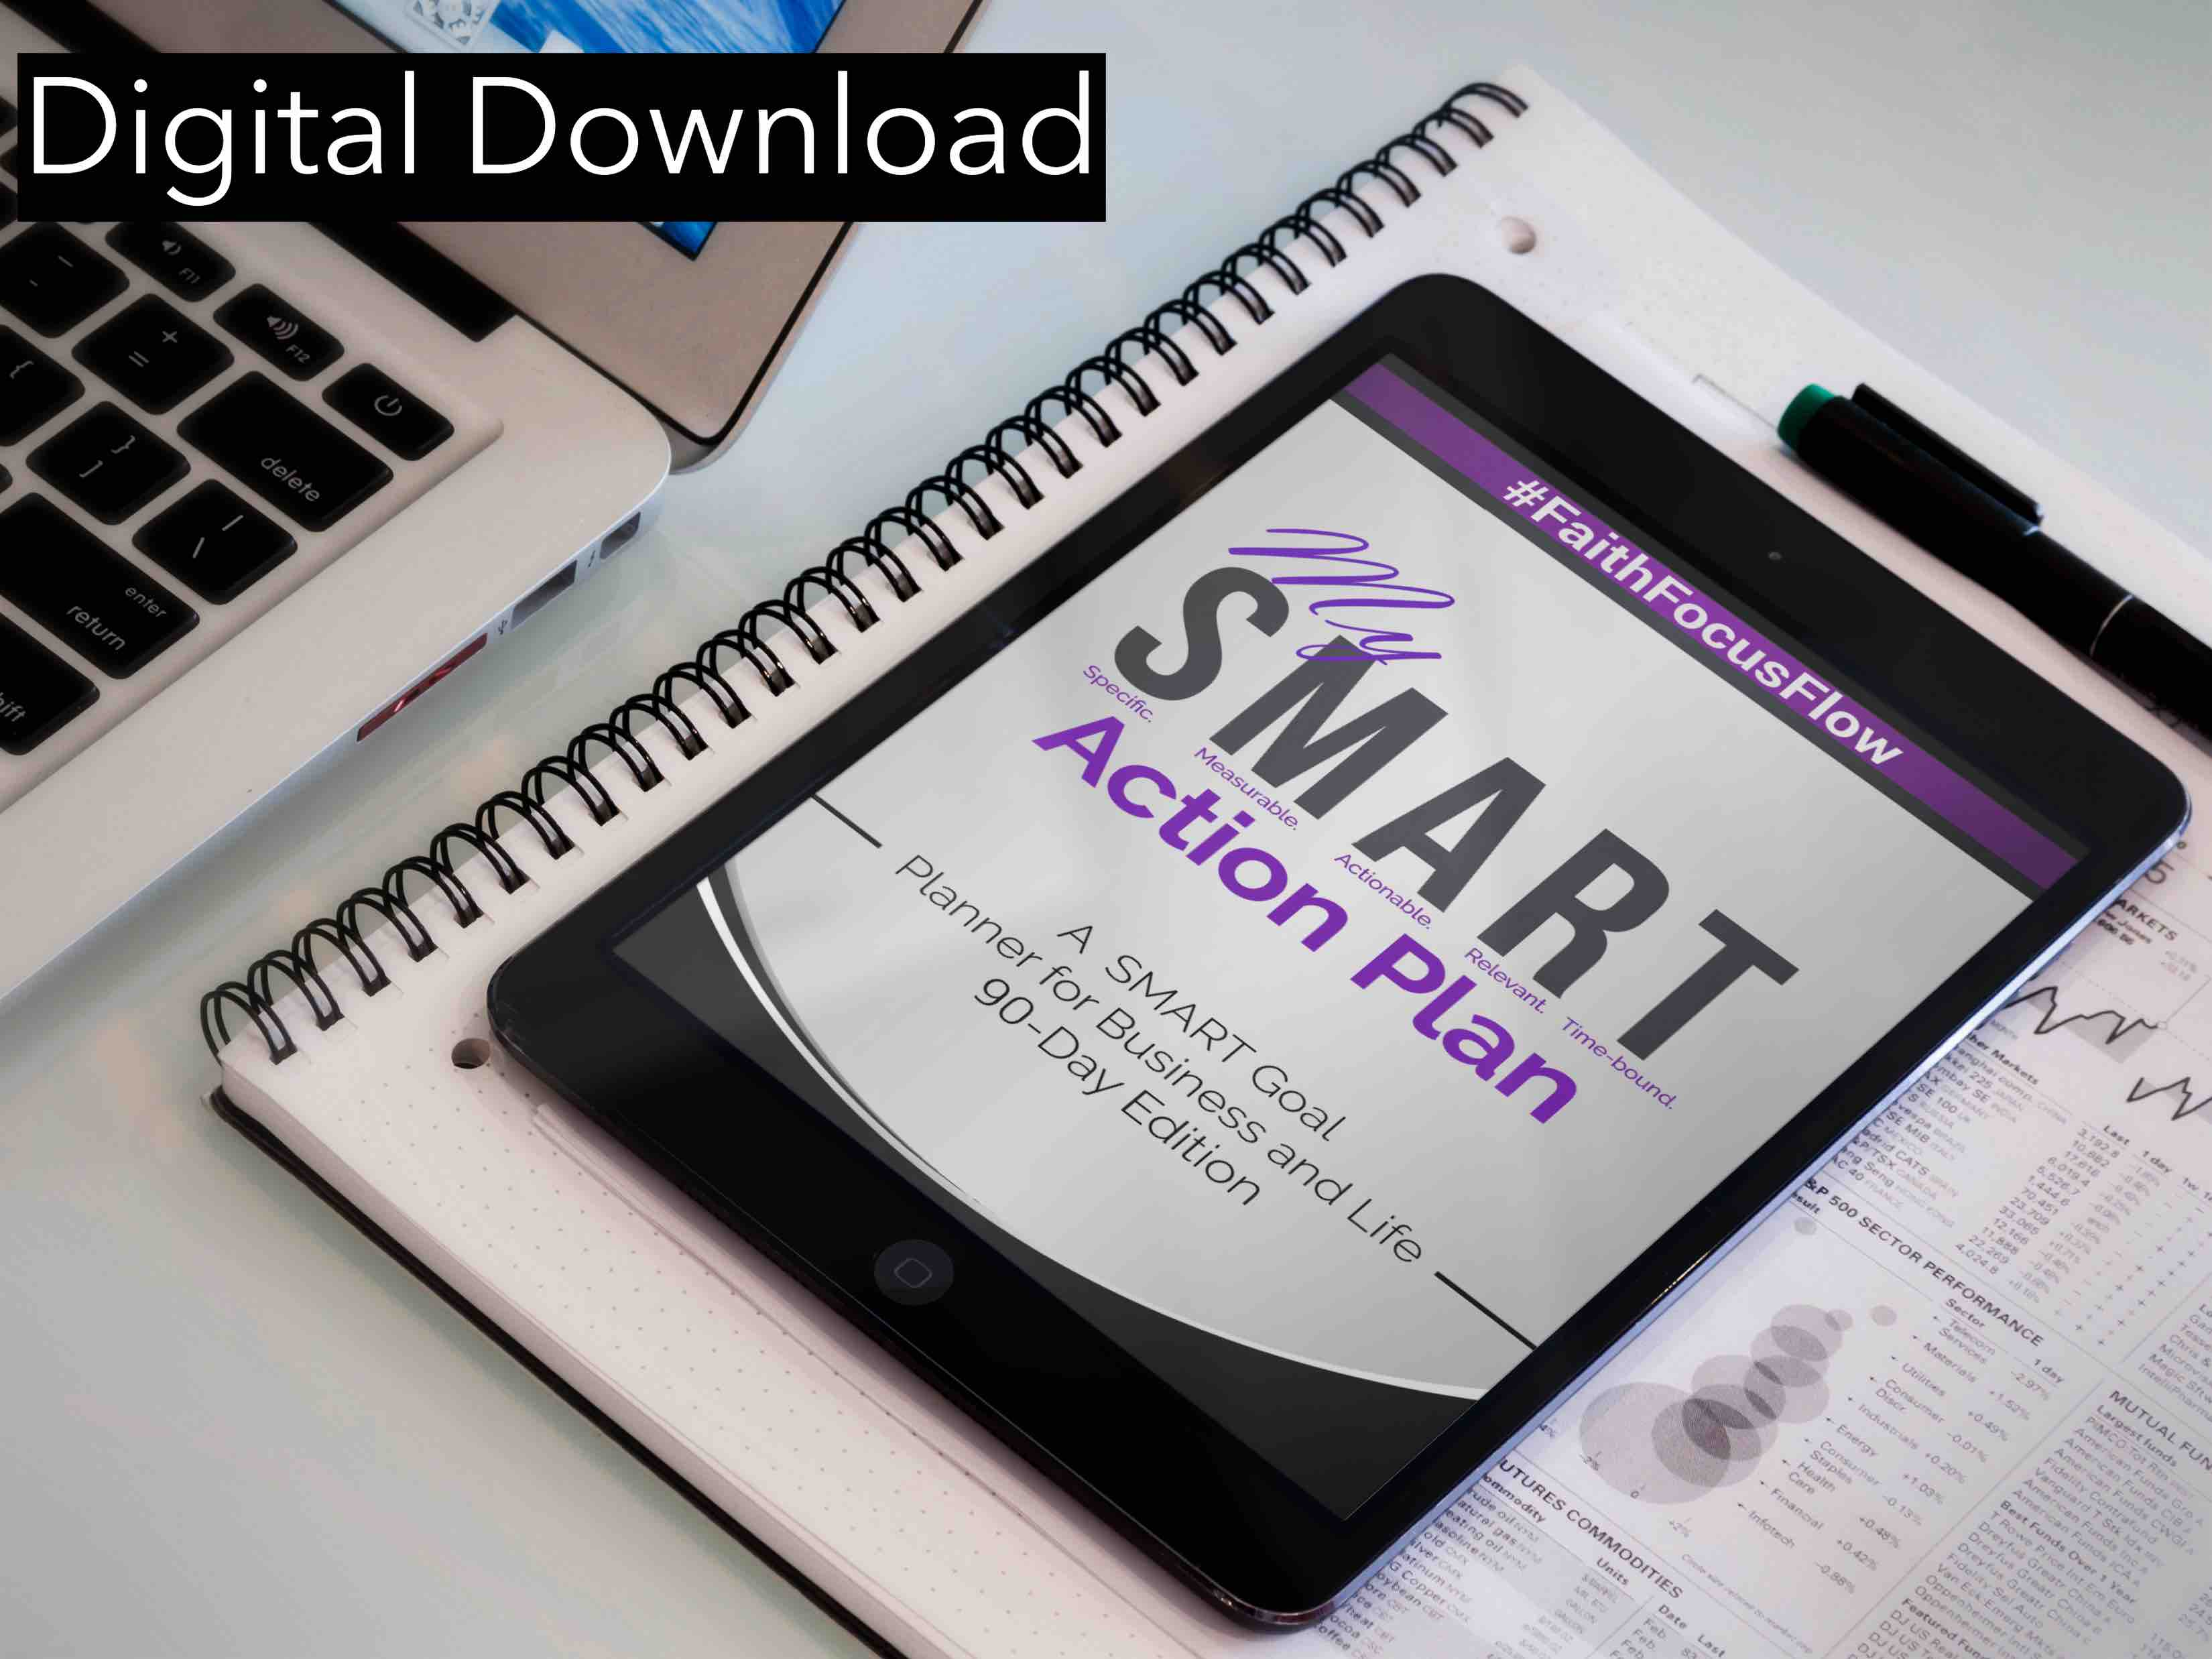 30 Day SMART Goal Action Planner - Digital Download